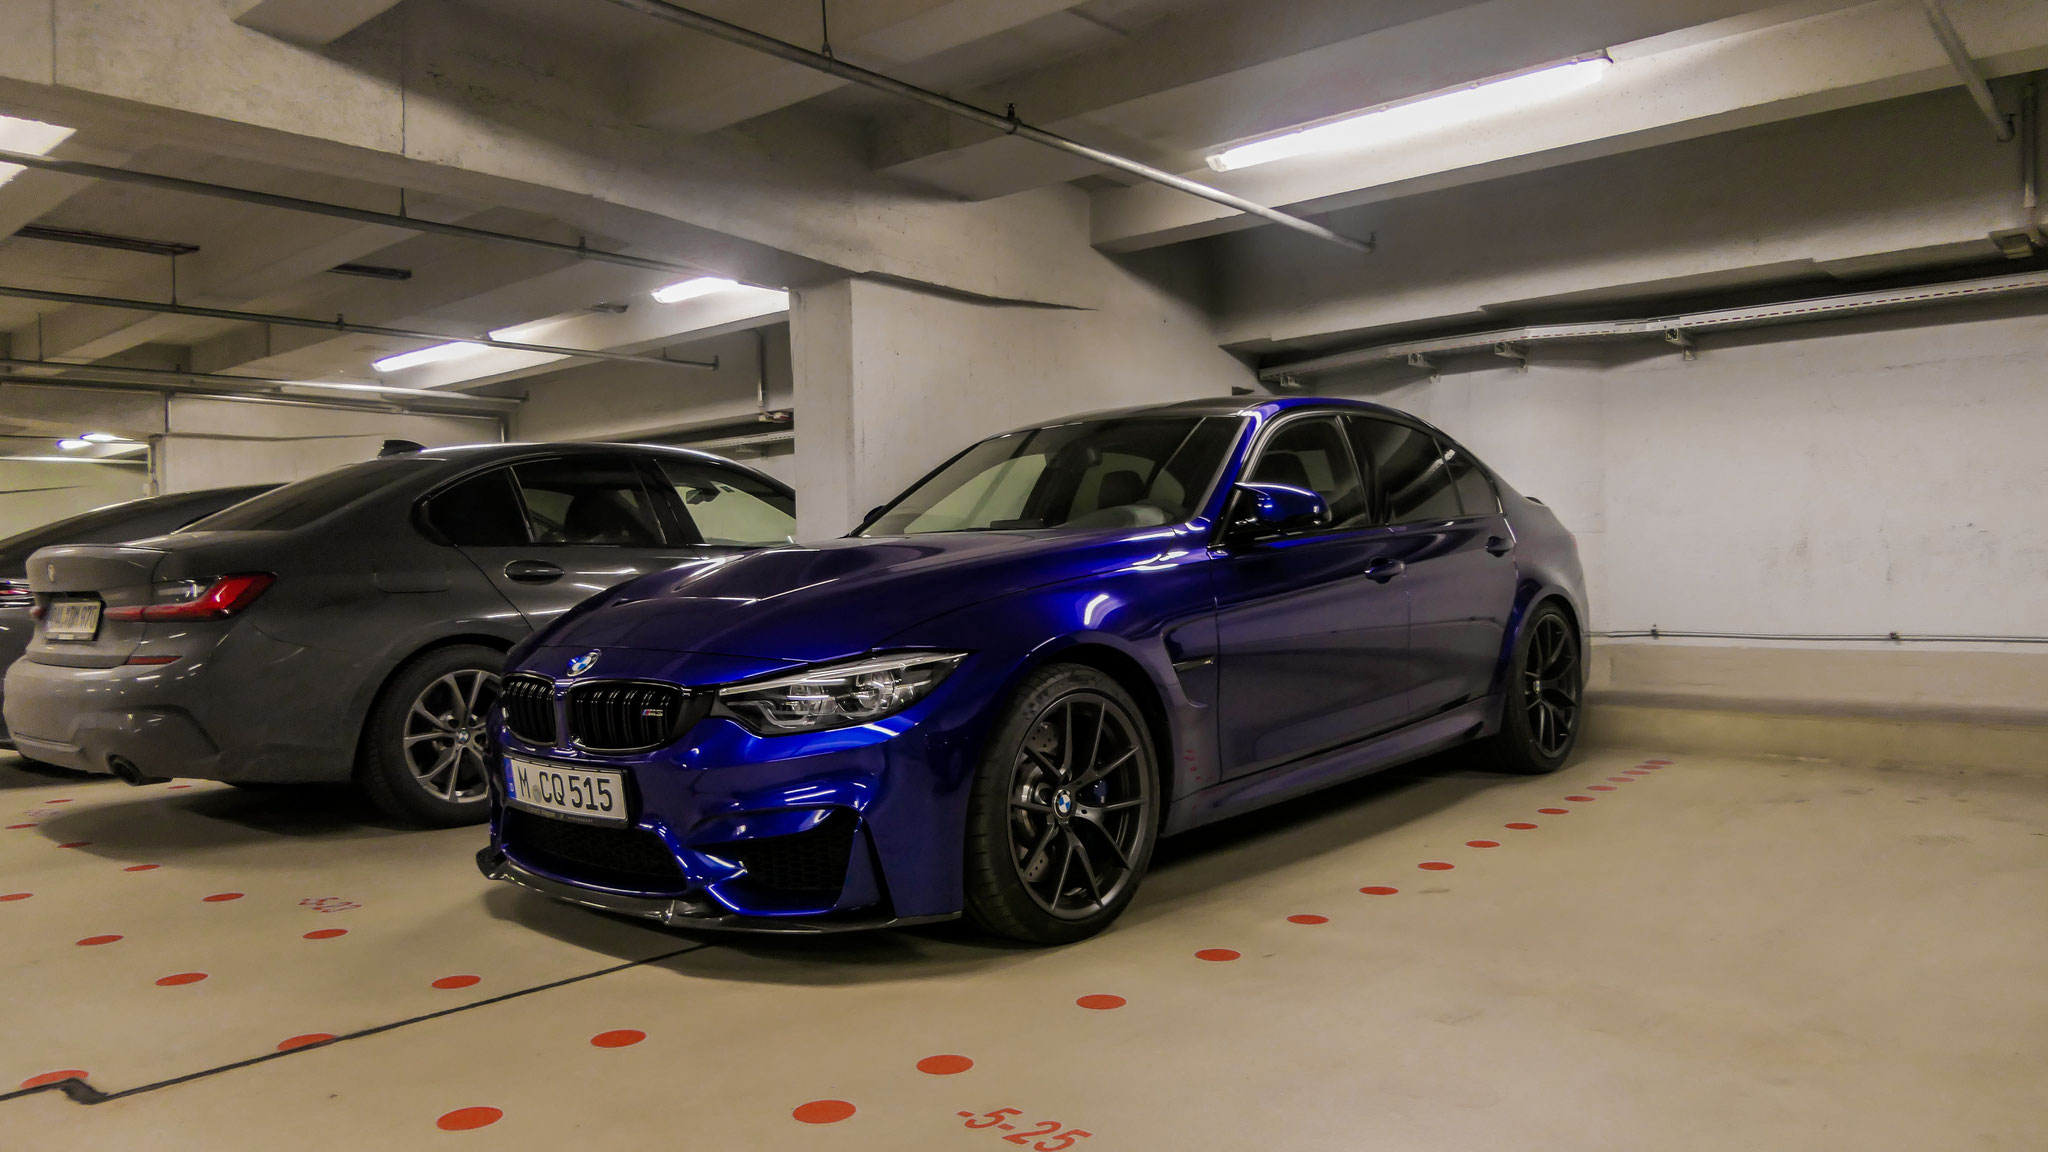 BMW M3 CS - M-CQ-5515